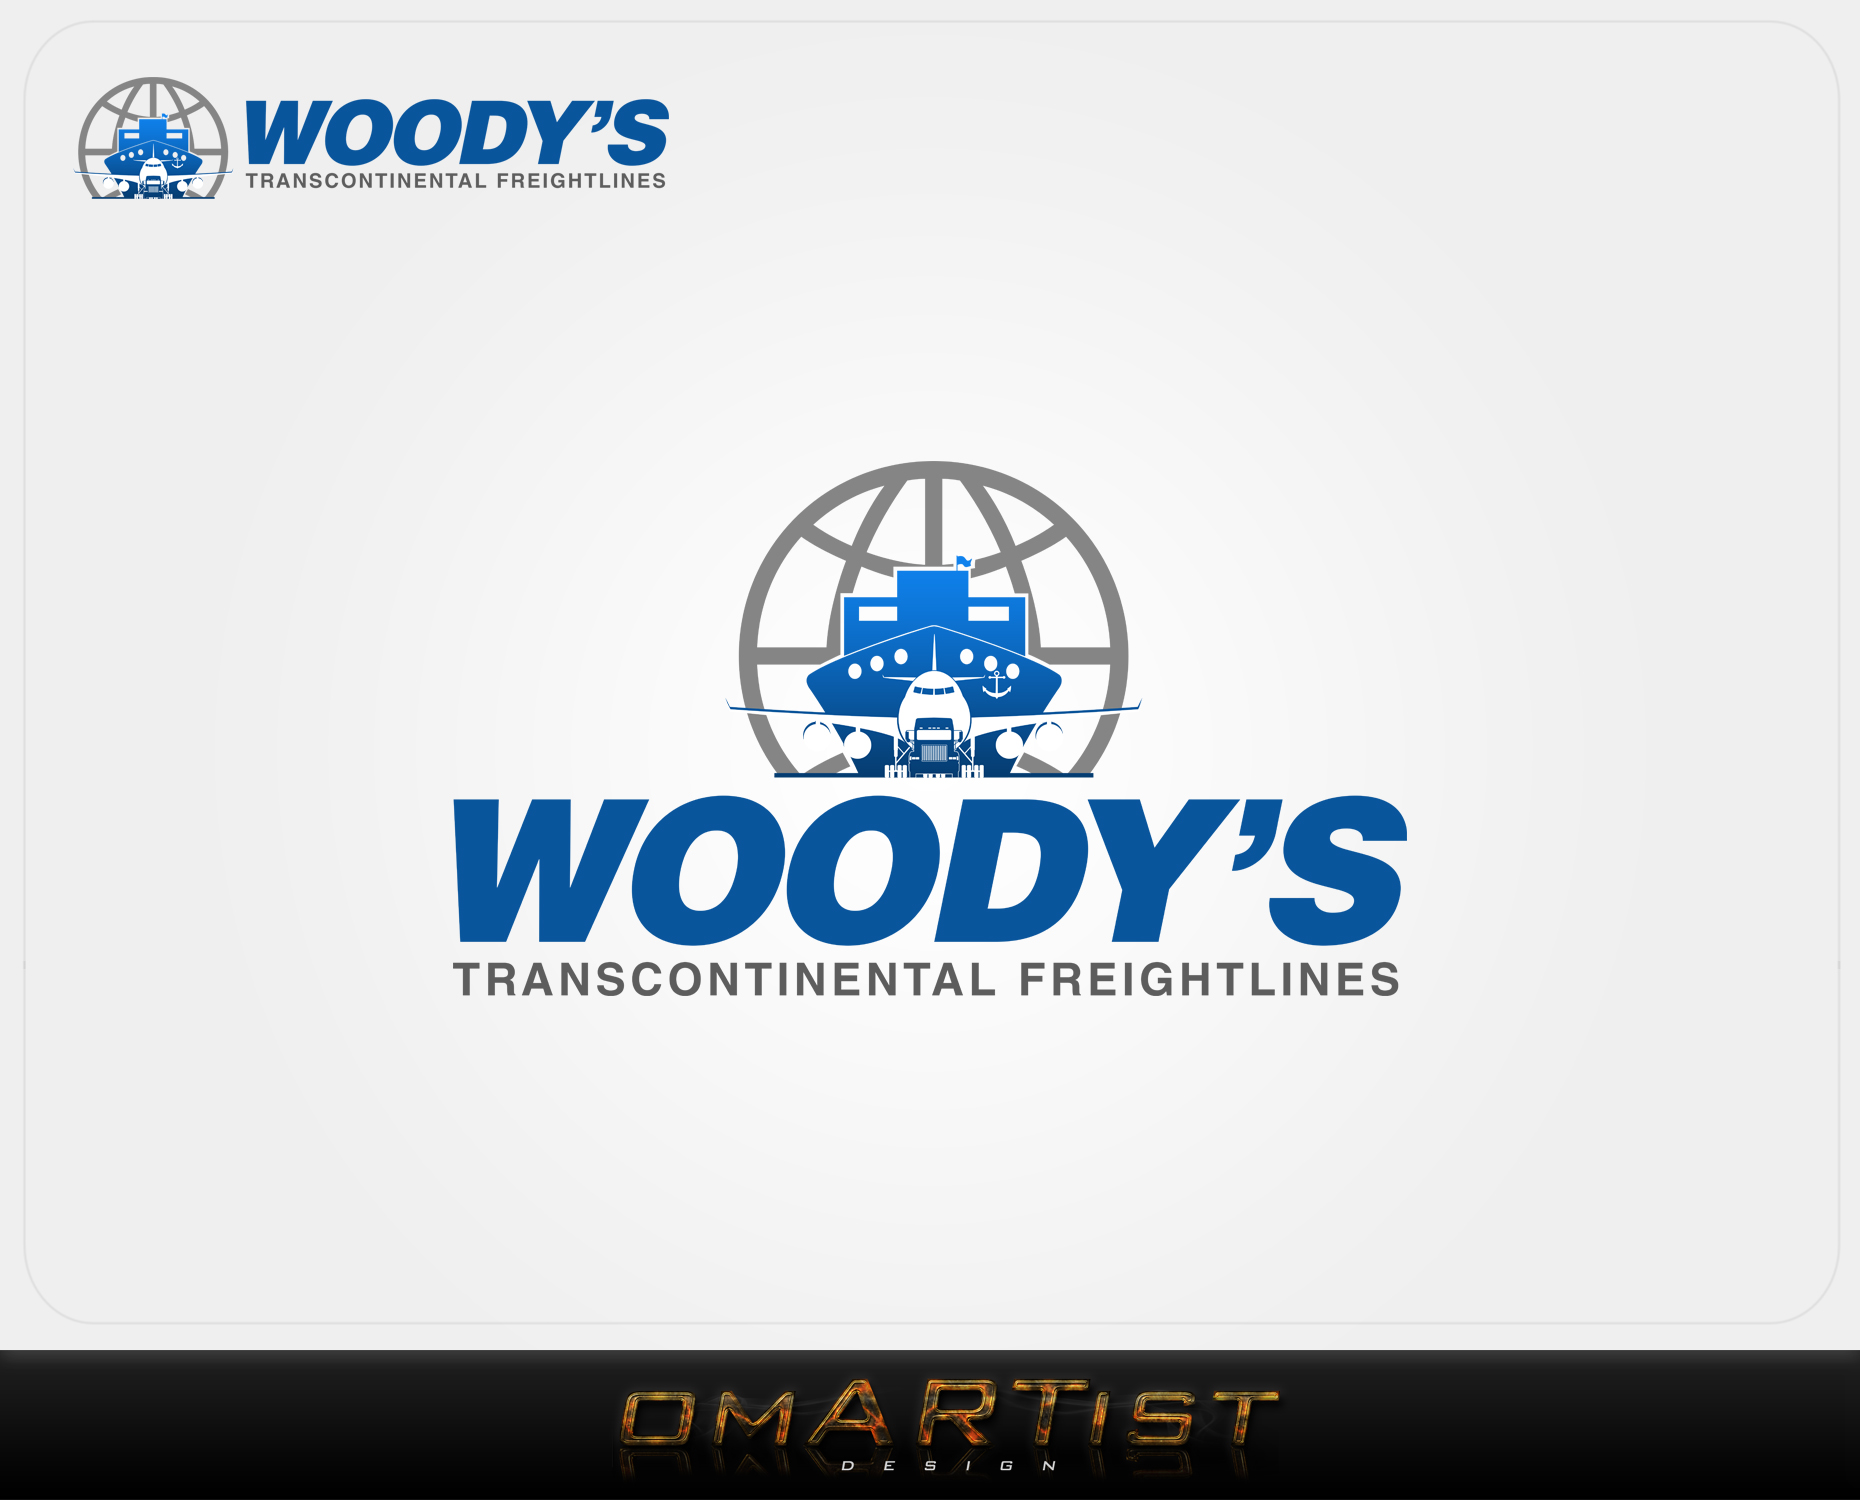 Logo Design by omARTist - Entry No. 1 in the Logo Design Contest Creative Logo Design for Woody's Transcontinental Freightlines.